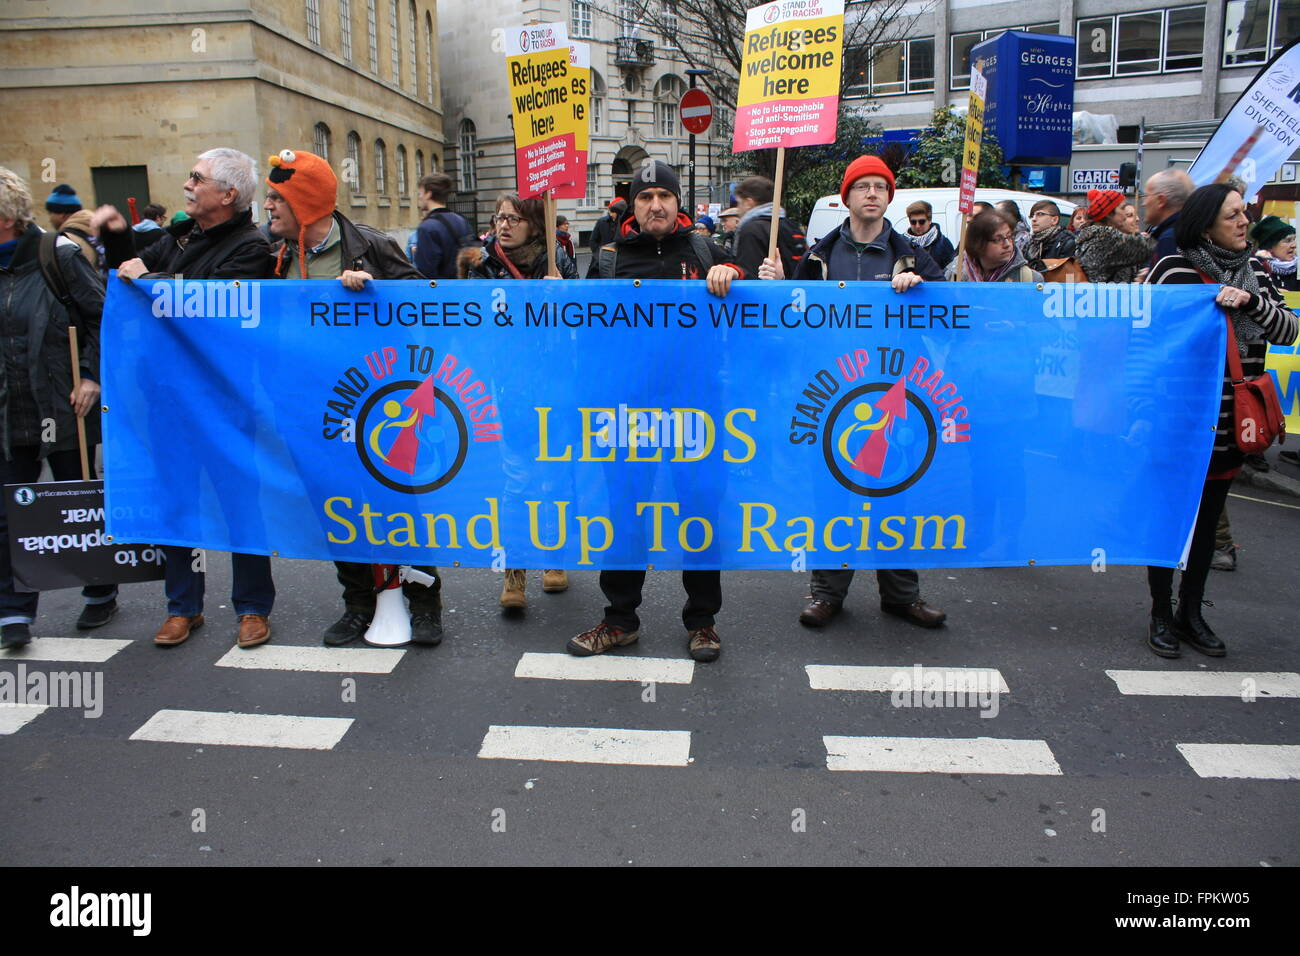 Leeds Stand Up To Racism banner in London, UK - Stock Image